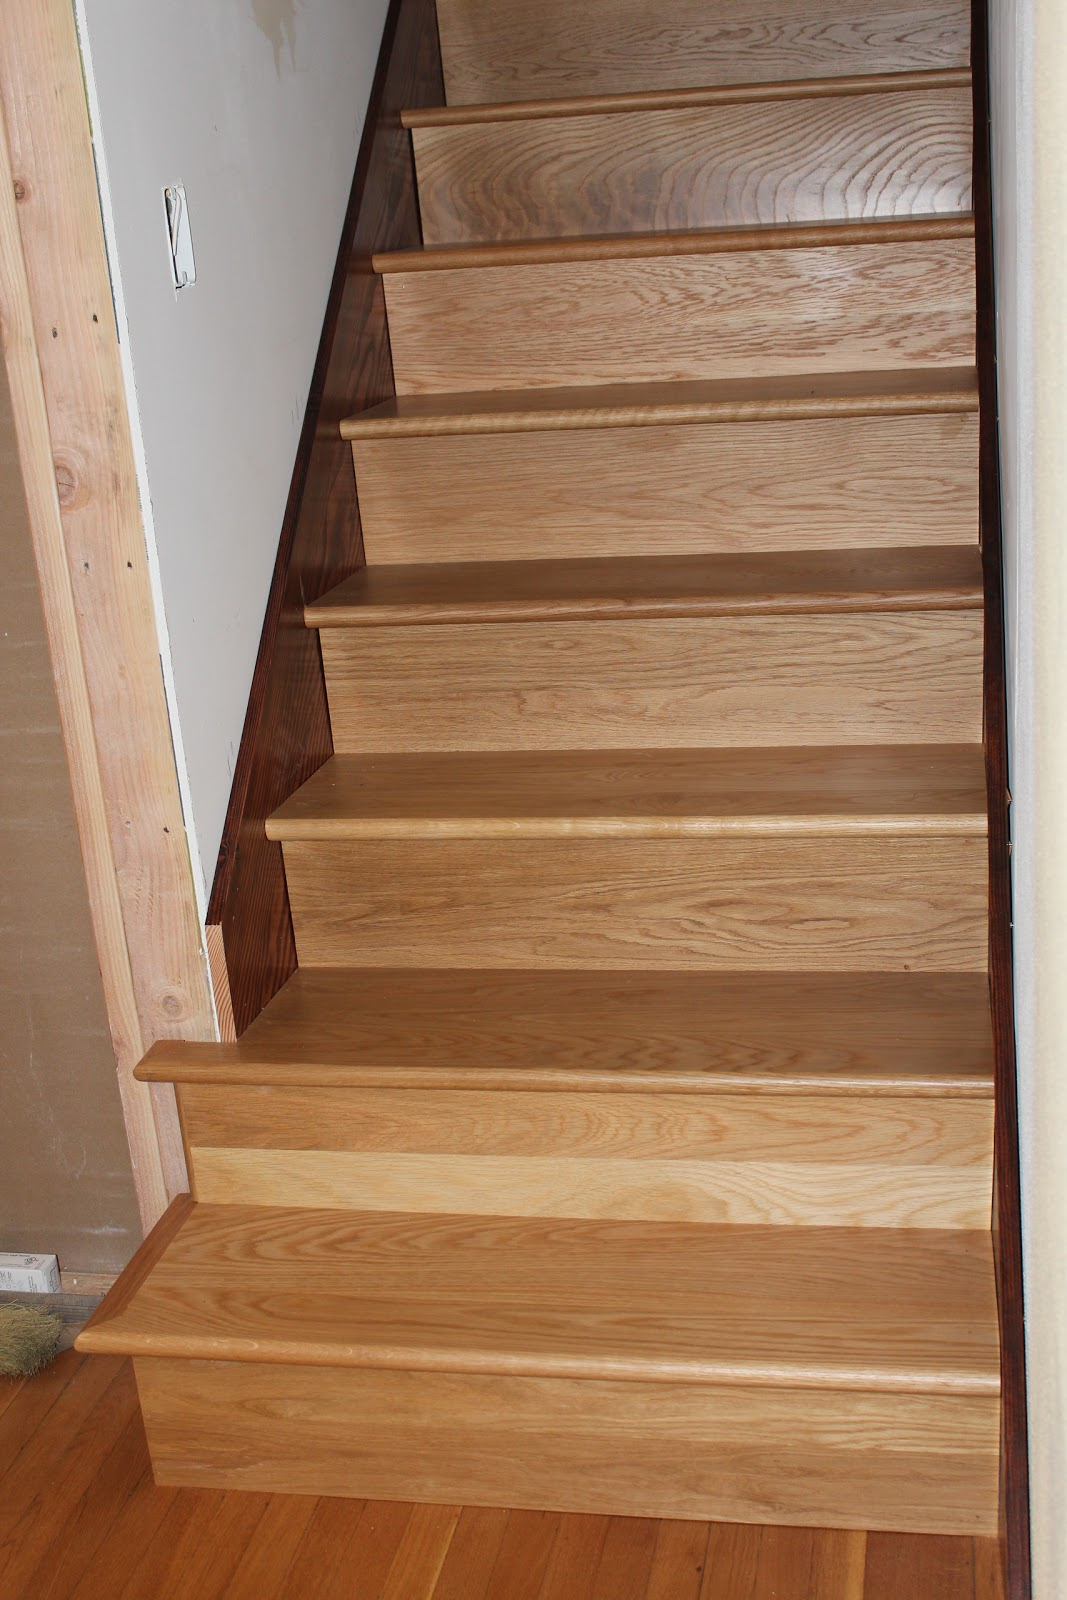 Stair skirtboard - The Stair Guy Will Be Back To Patch Some Gaps Between The Stairs And The Skirt Boards Due To The Bow In The Skirt Board And To Replace The Second To